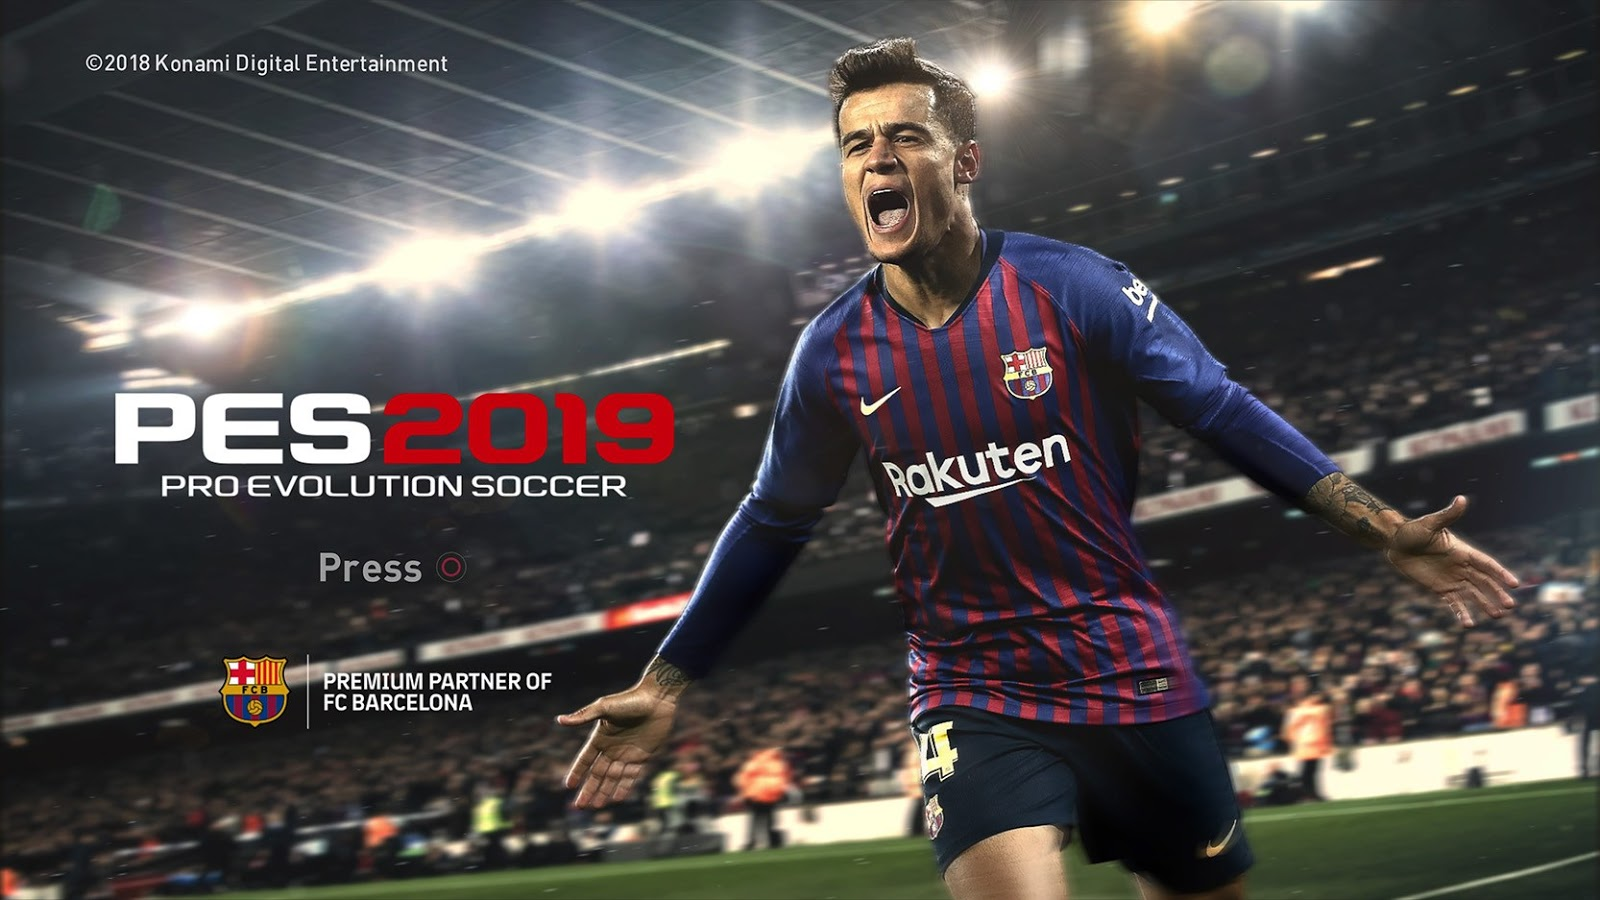 patch pes 2019 mobile 3.1.0